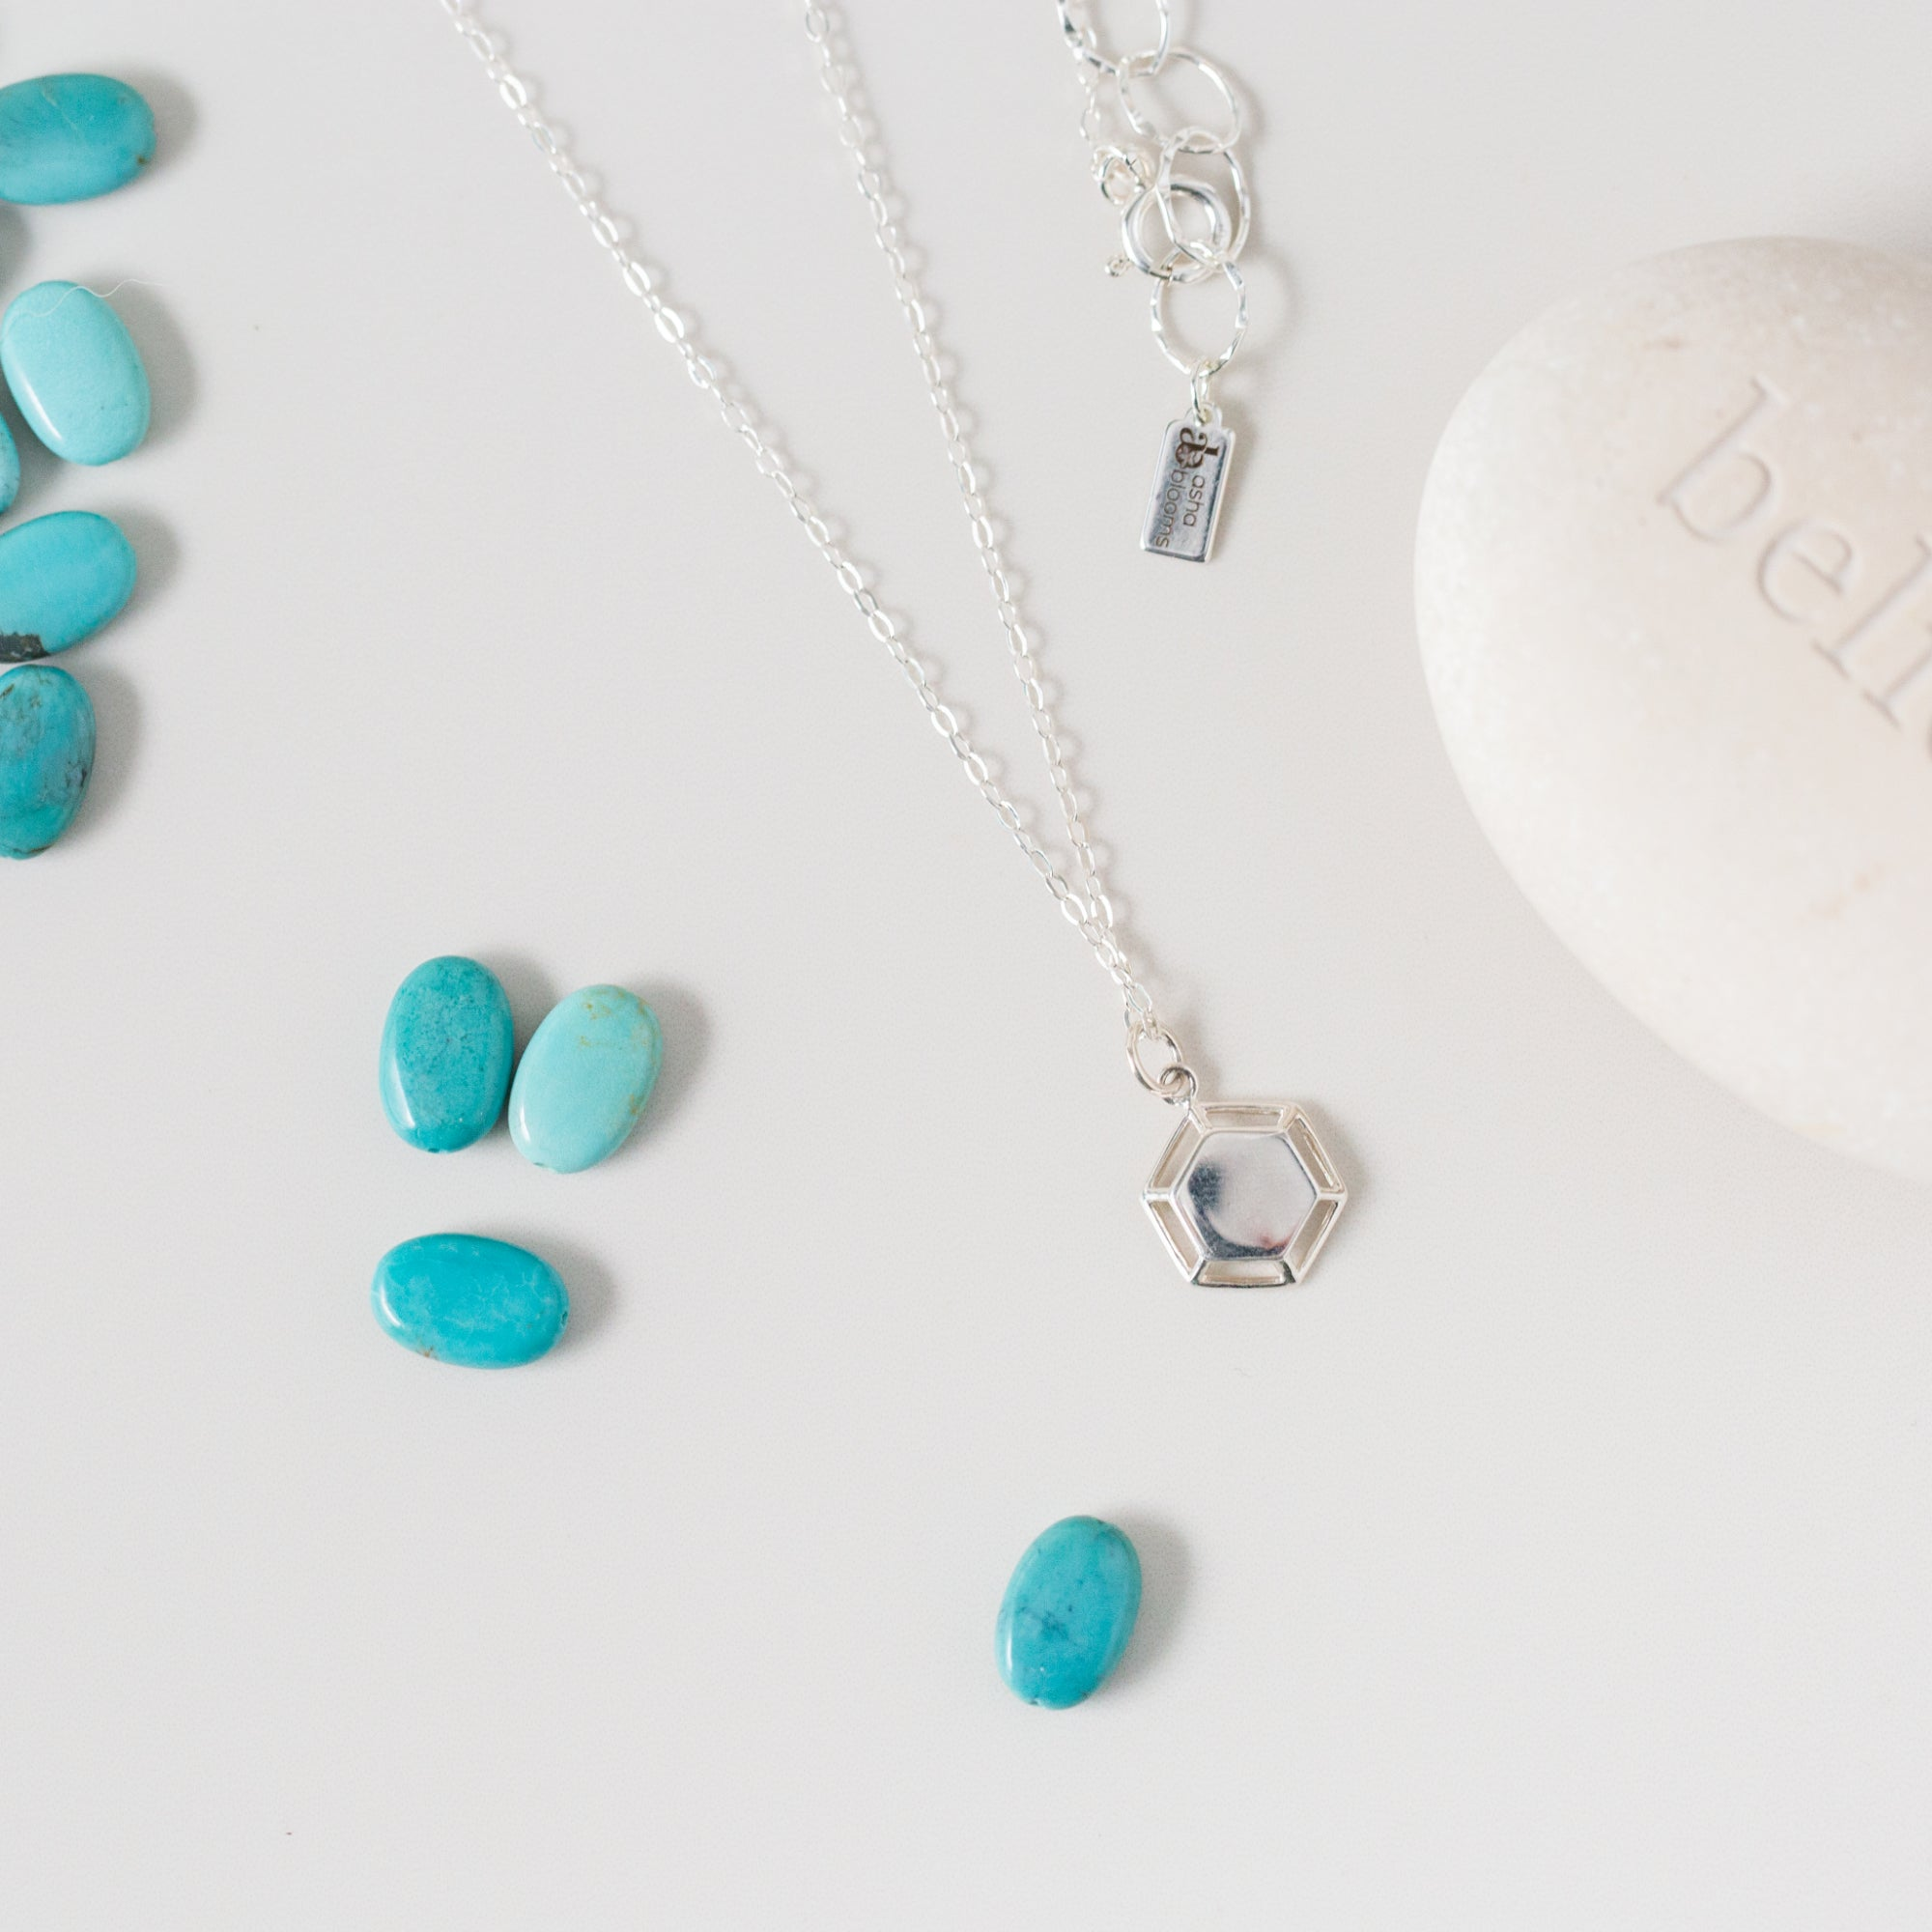 Silver Hexagon Pendant Necklace 'One Day at a Time' Flat Lay with Small Blue Stones Photo by Asha Blooms